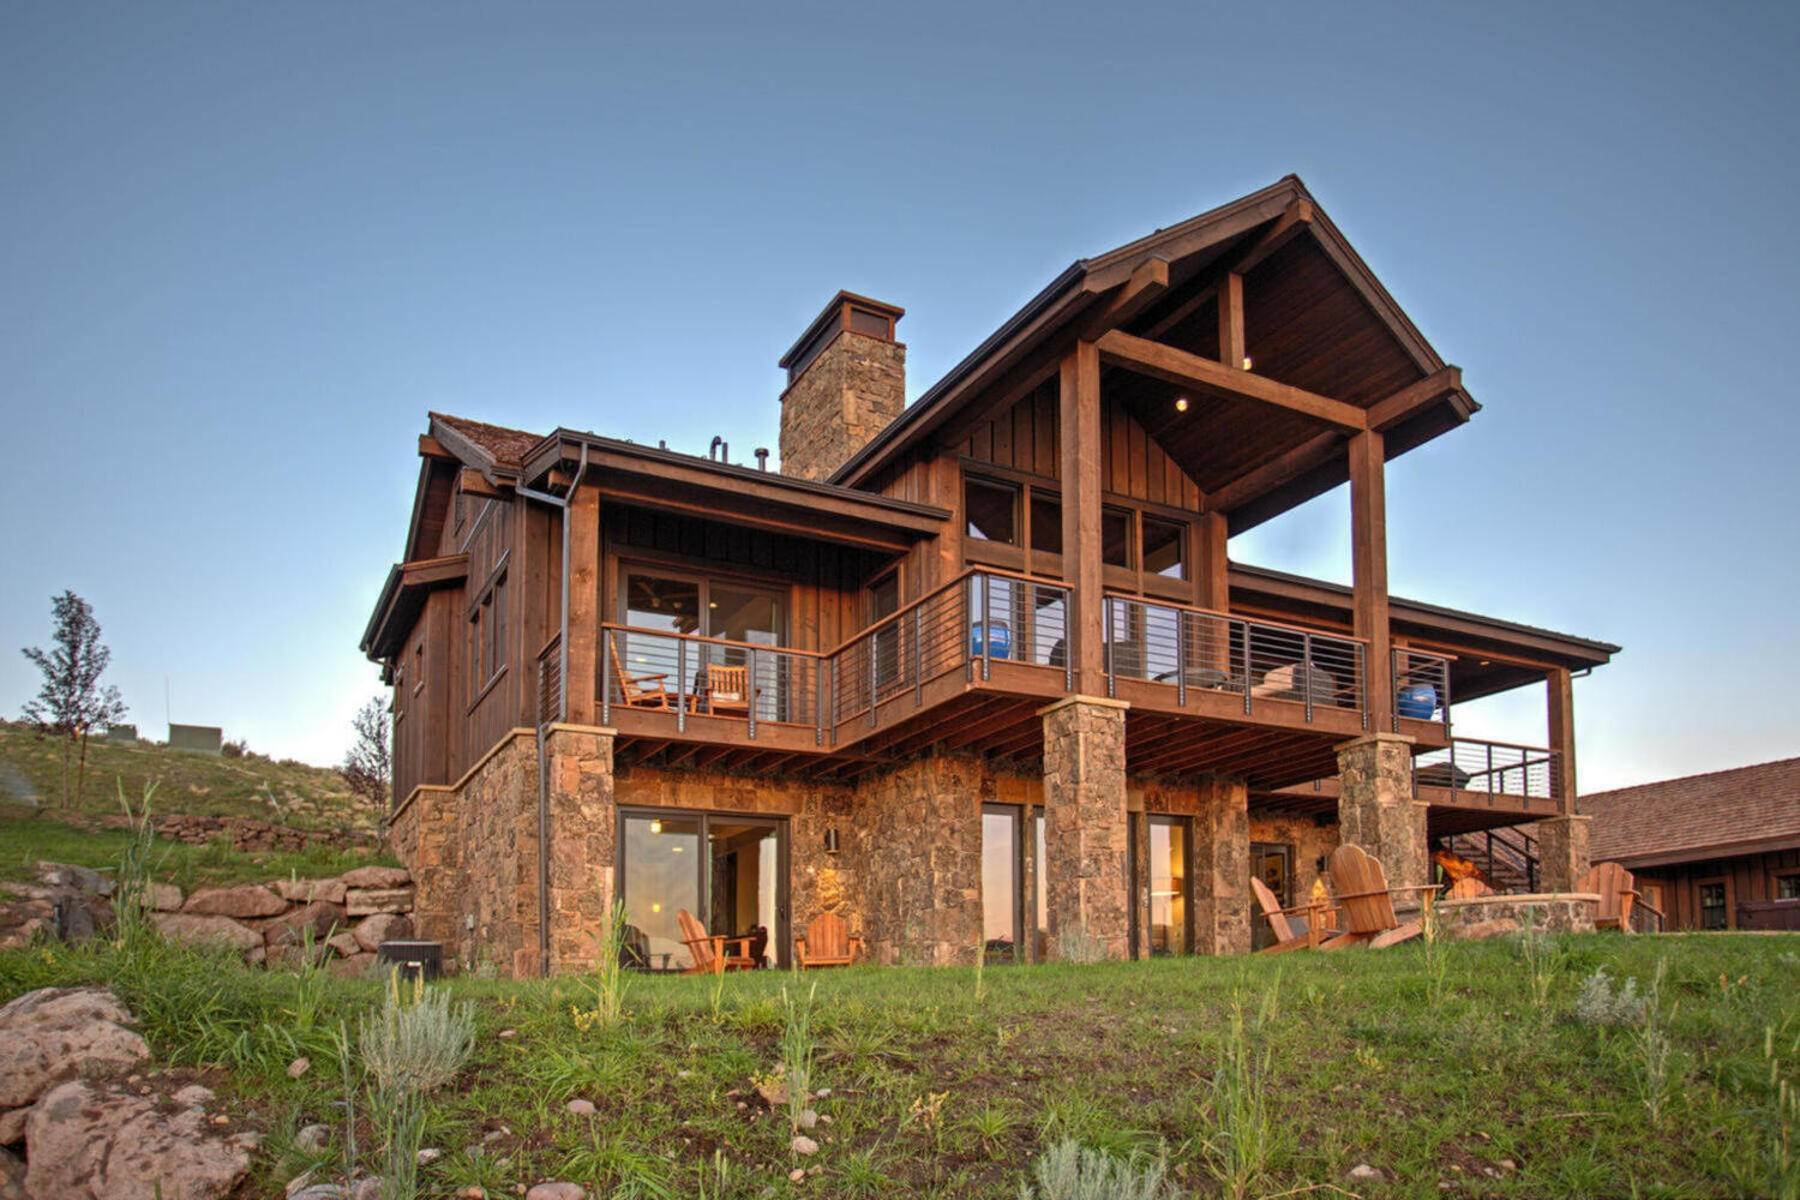 Property for Sale at Expanded Juniper Cabin with Spectacular Views! 5941 N Shooting Star Circle Heber City, Utah 84032 United States